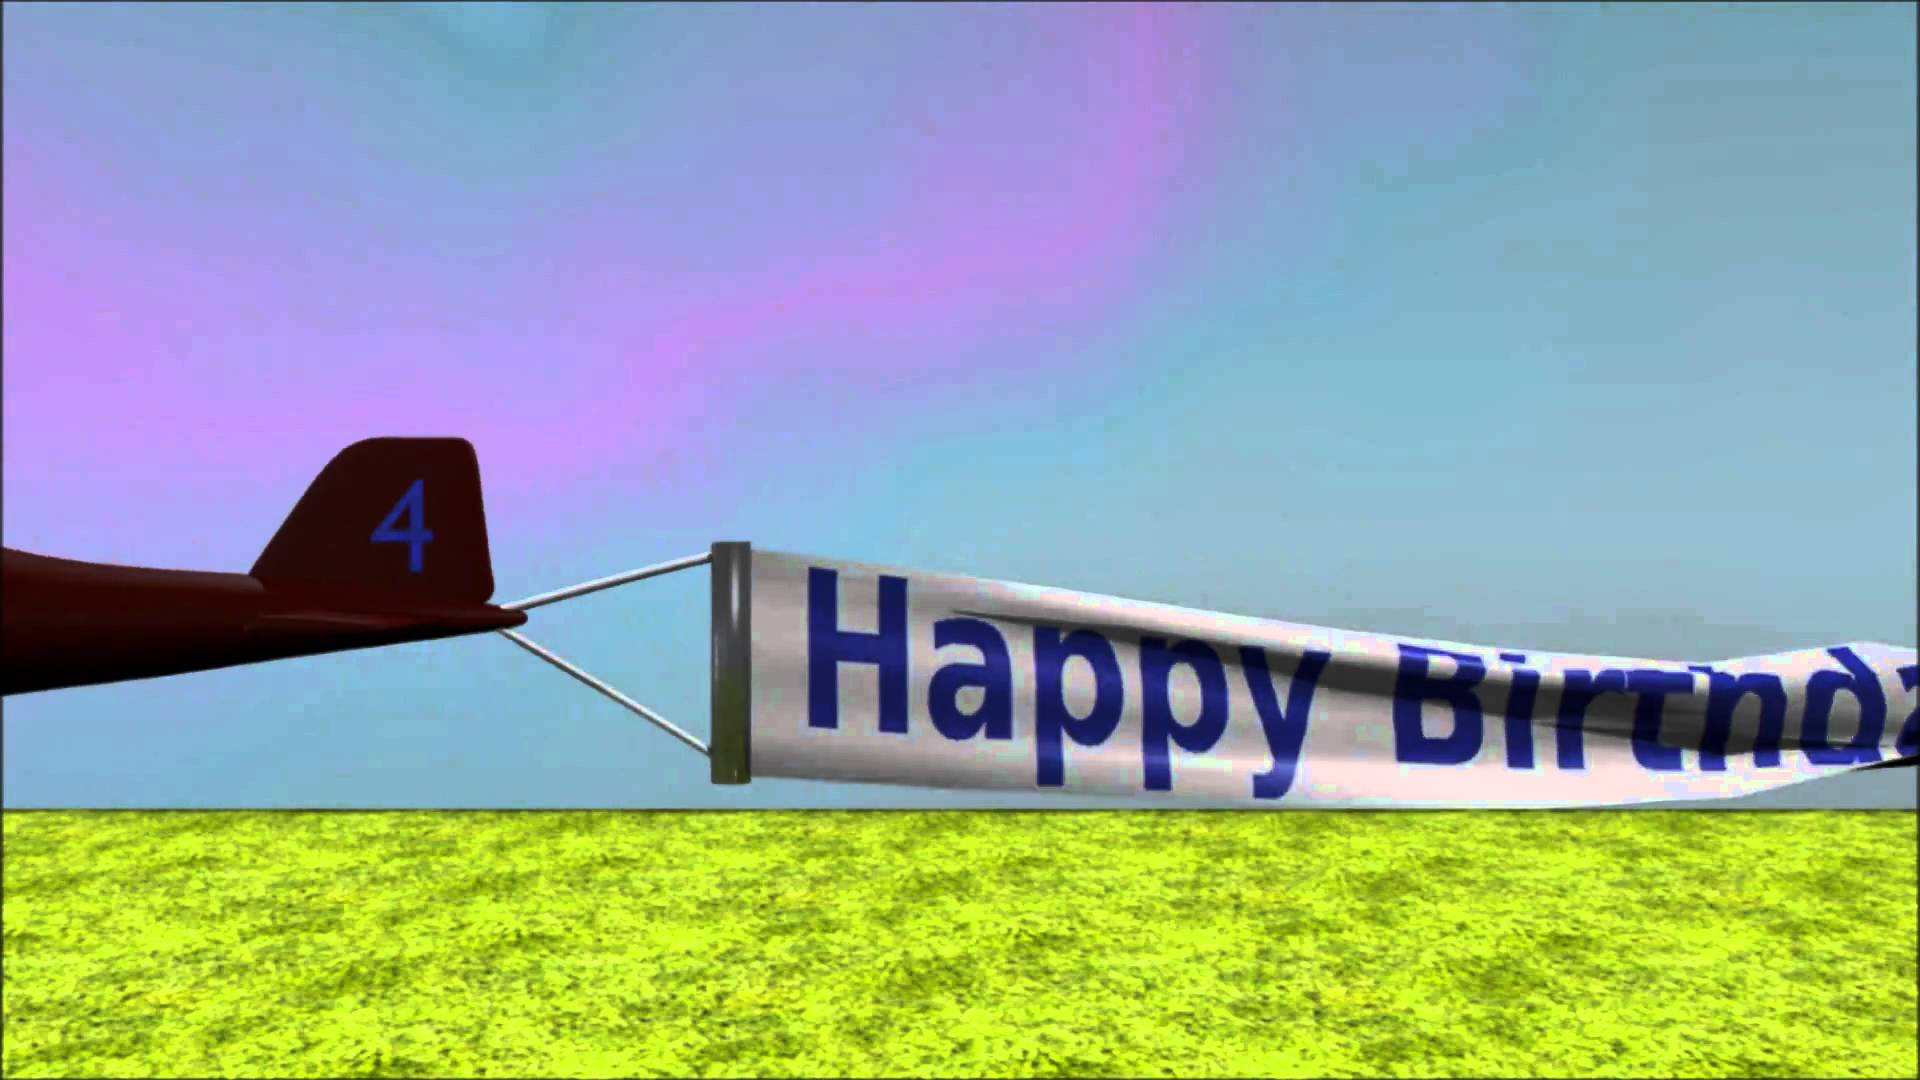 happy birthday airplane message ; maxresdefault